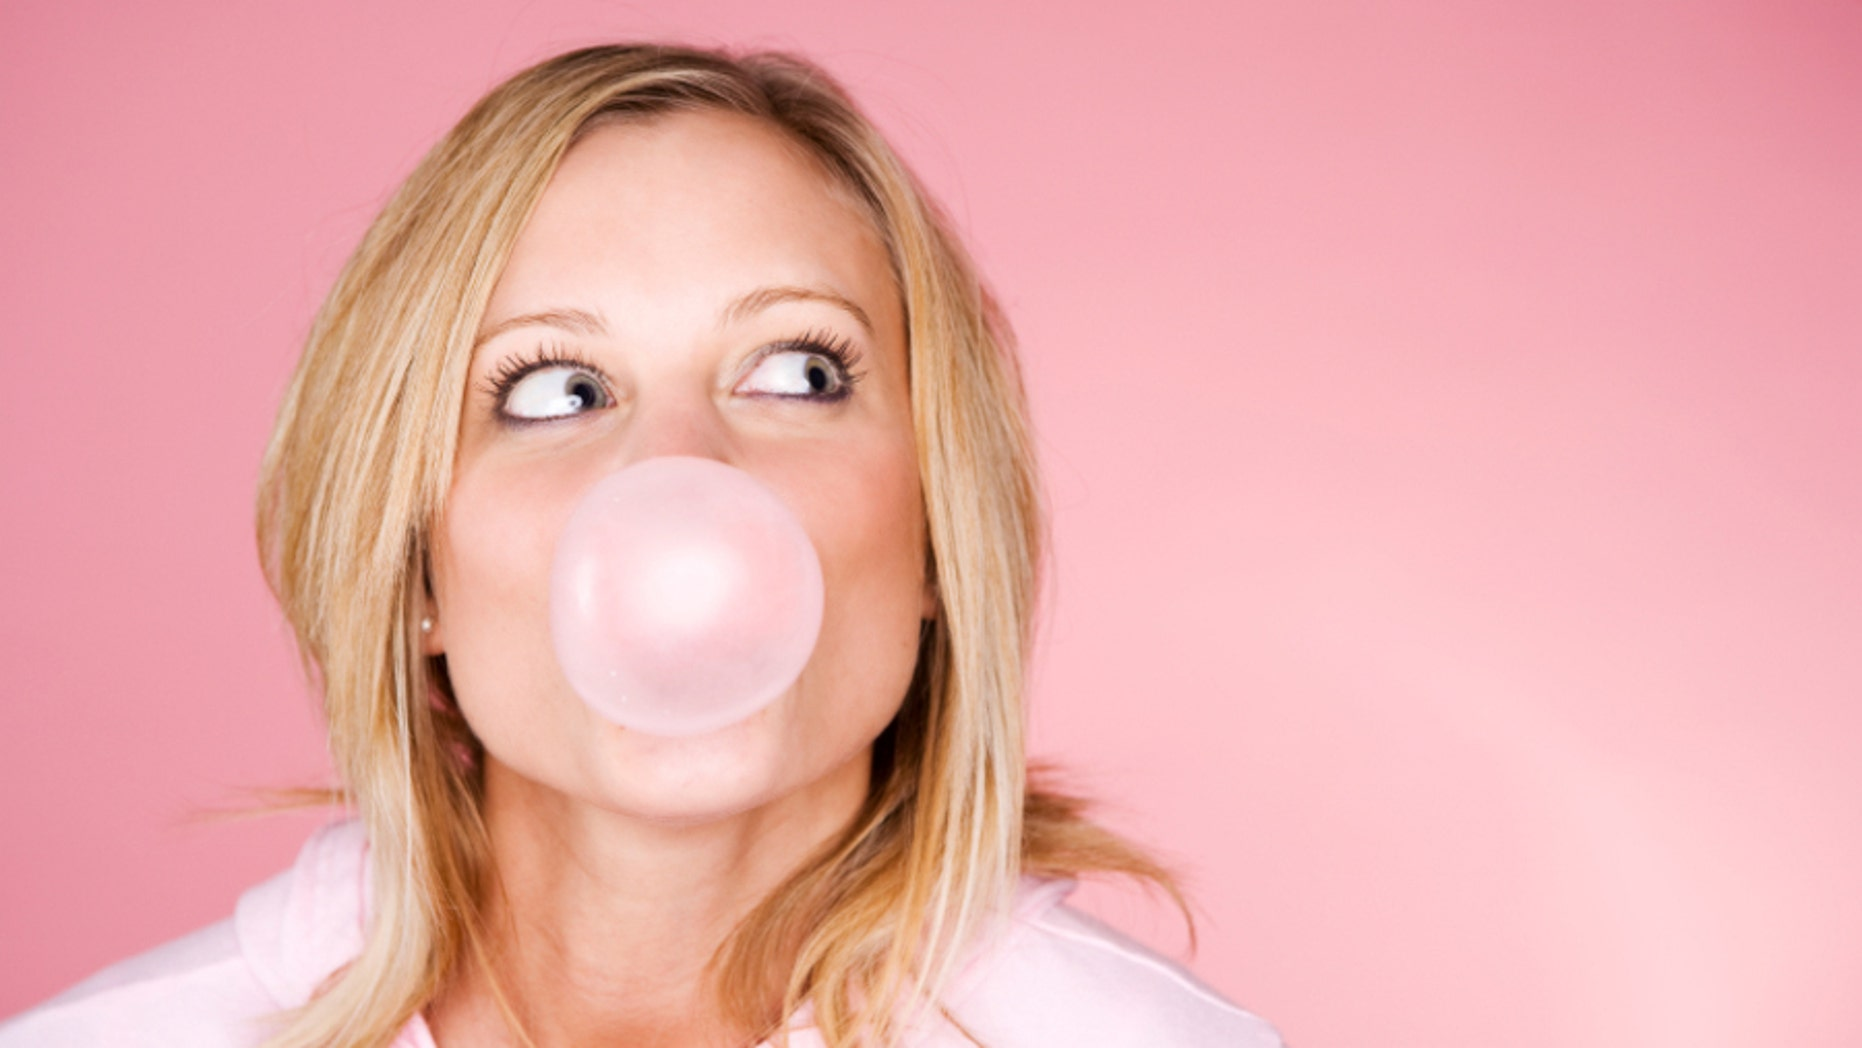 6 Gross Side Effects Of Chewing Gum